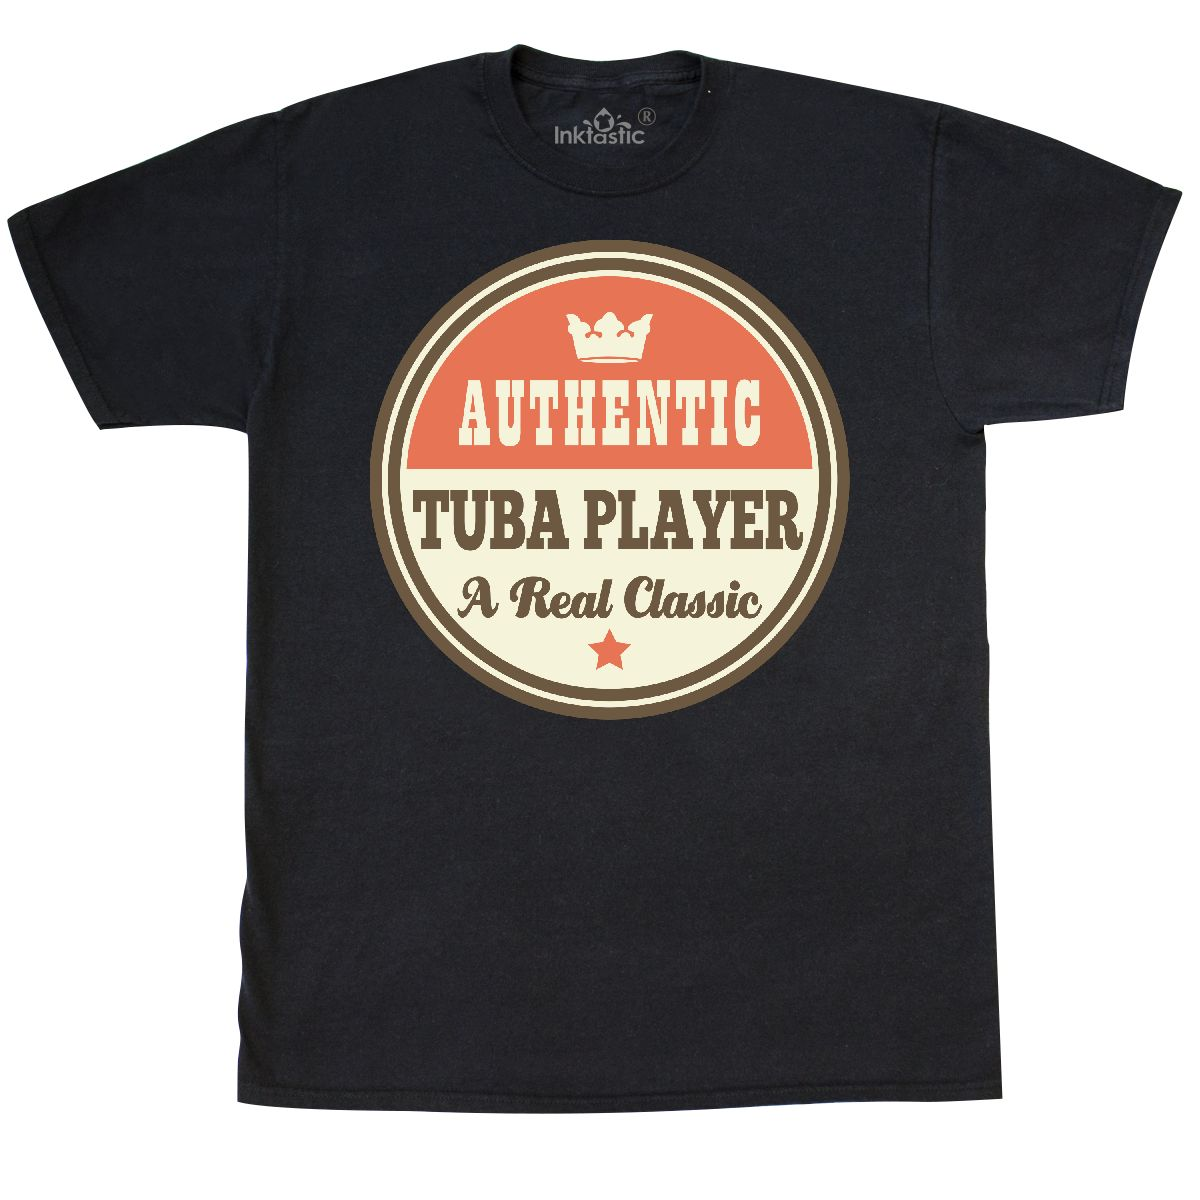 Inktastic Tuba Player Vintage Classic T-Shirt Gift Retired Retirement Authentic